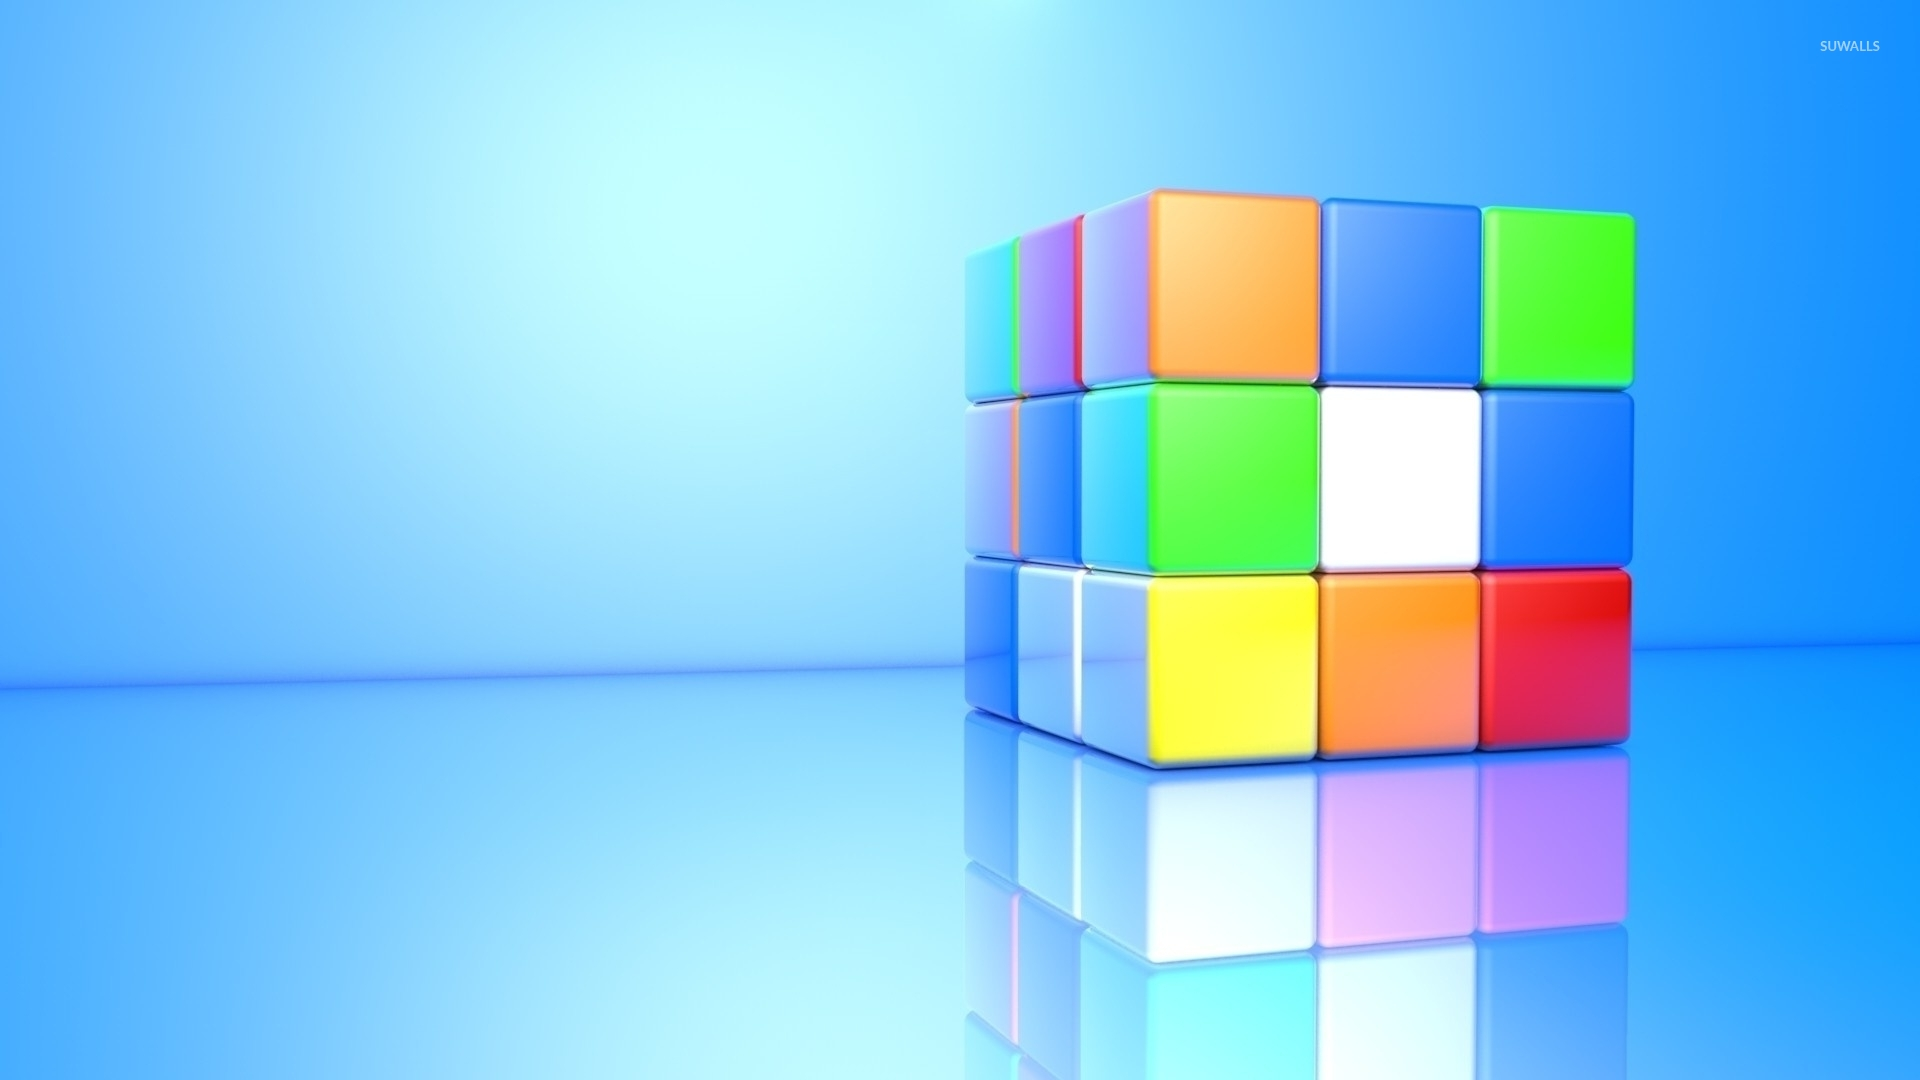 Colorful 3D Rubiks Cube Wallpaper